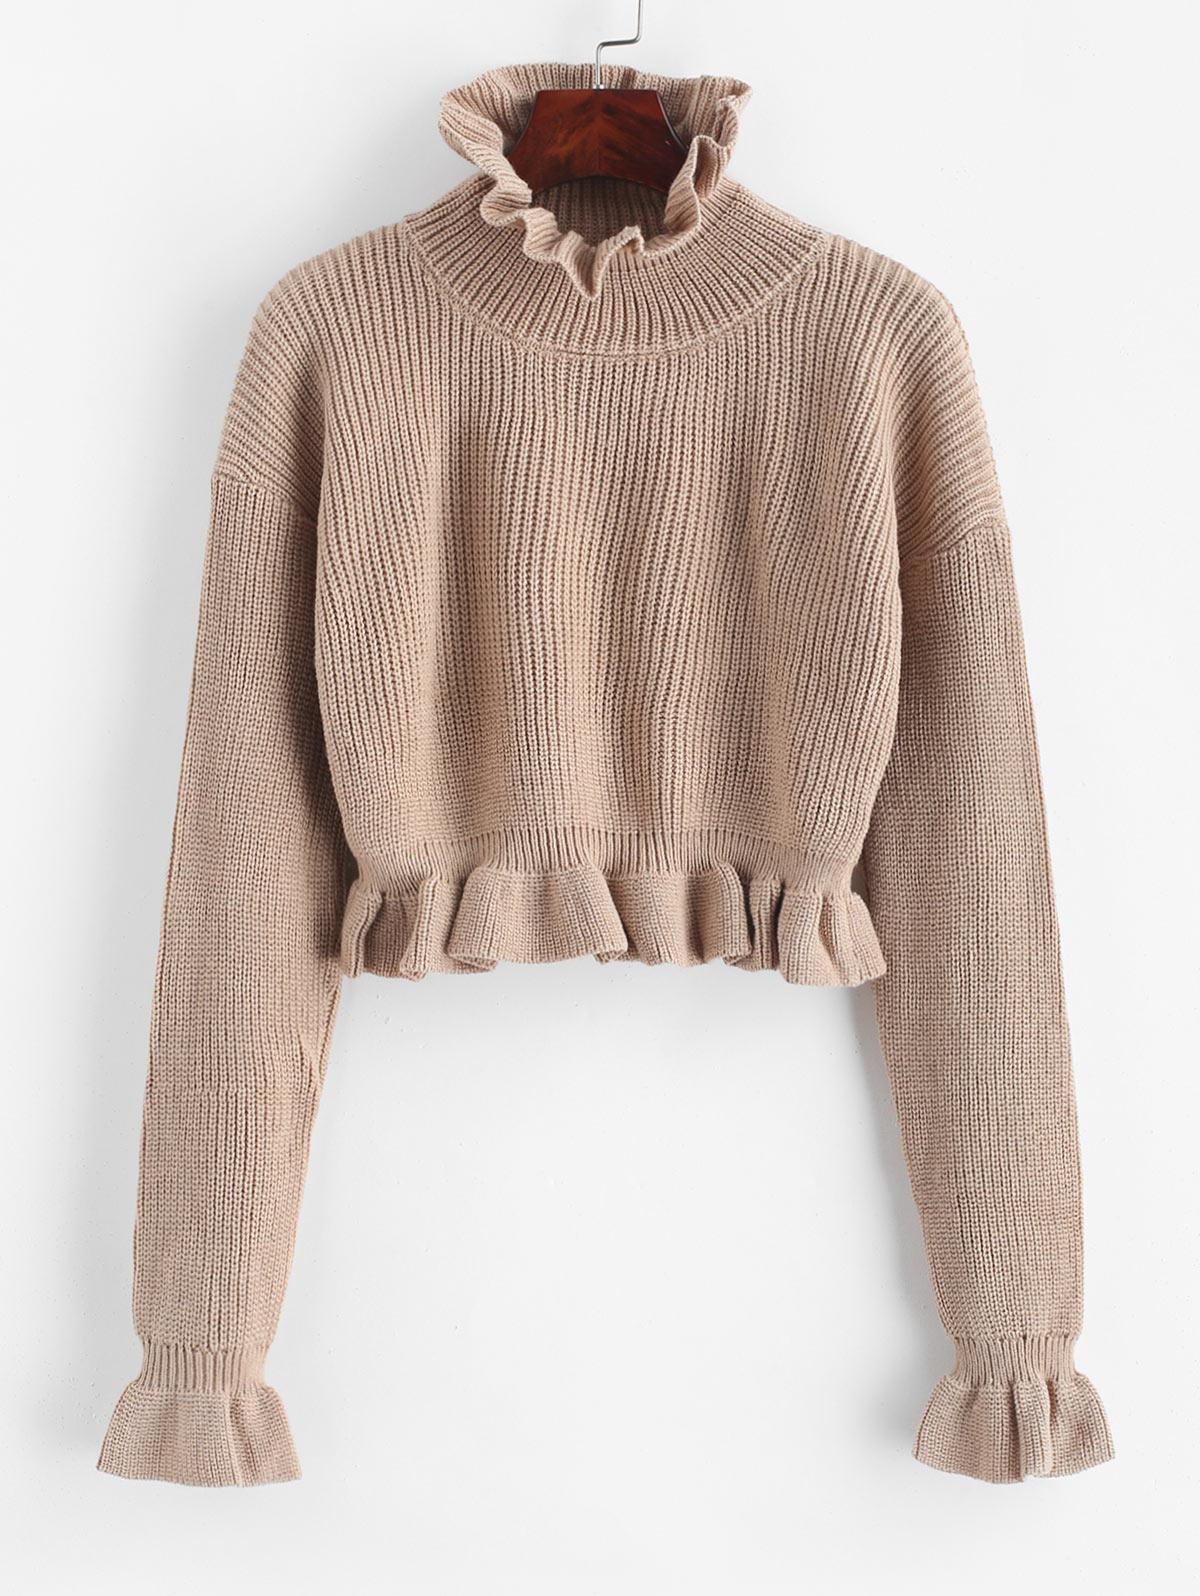 Solid Ruffled Pullover Sweater, Camel brown